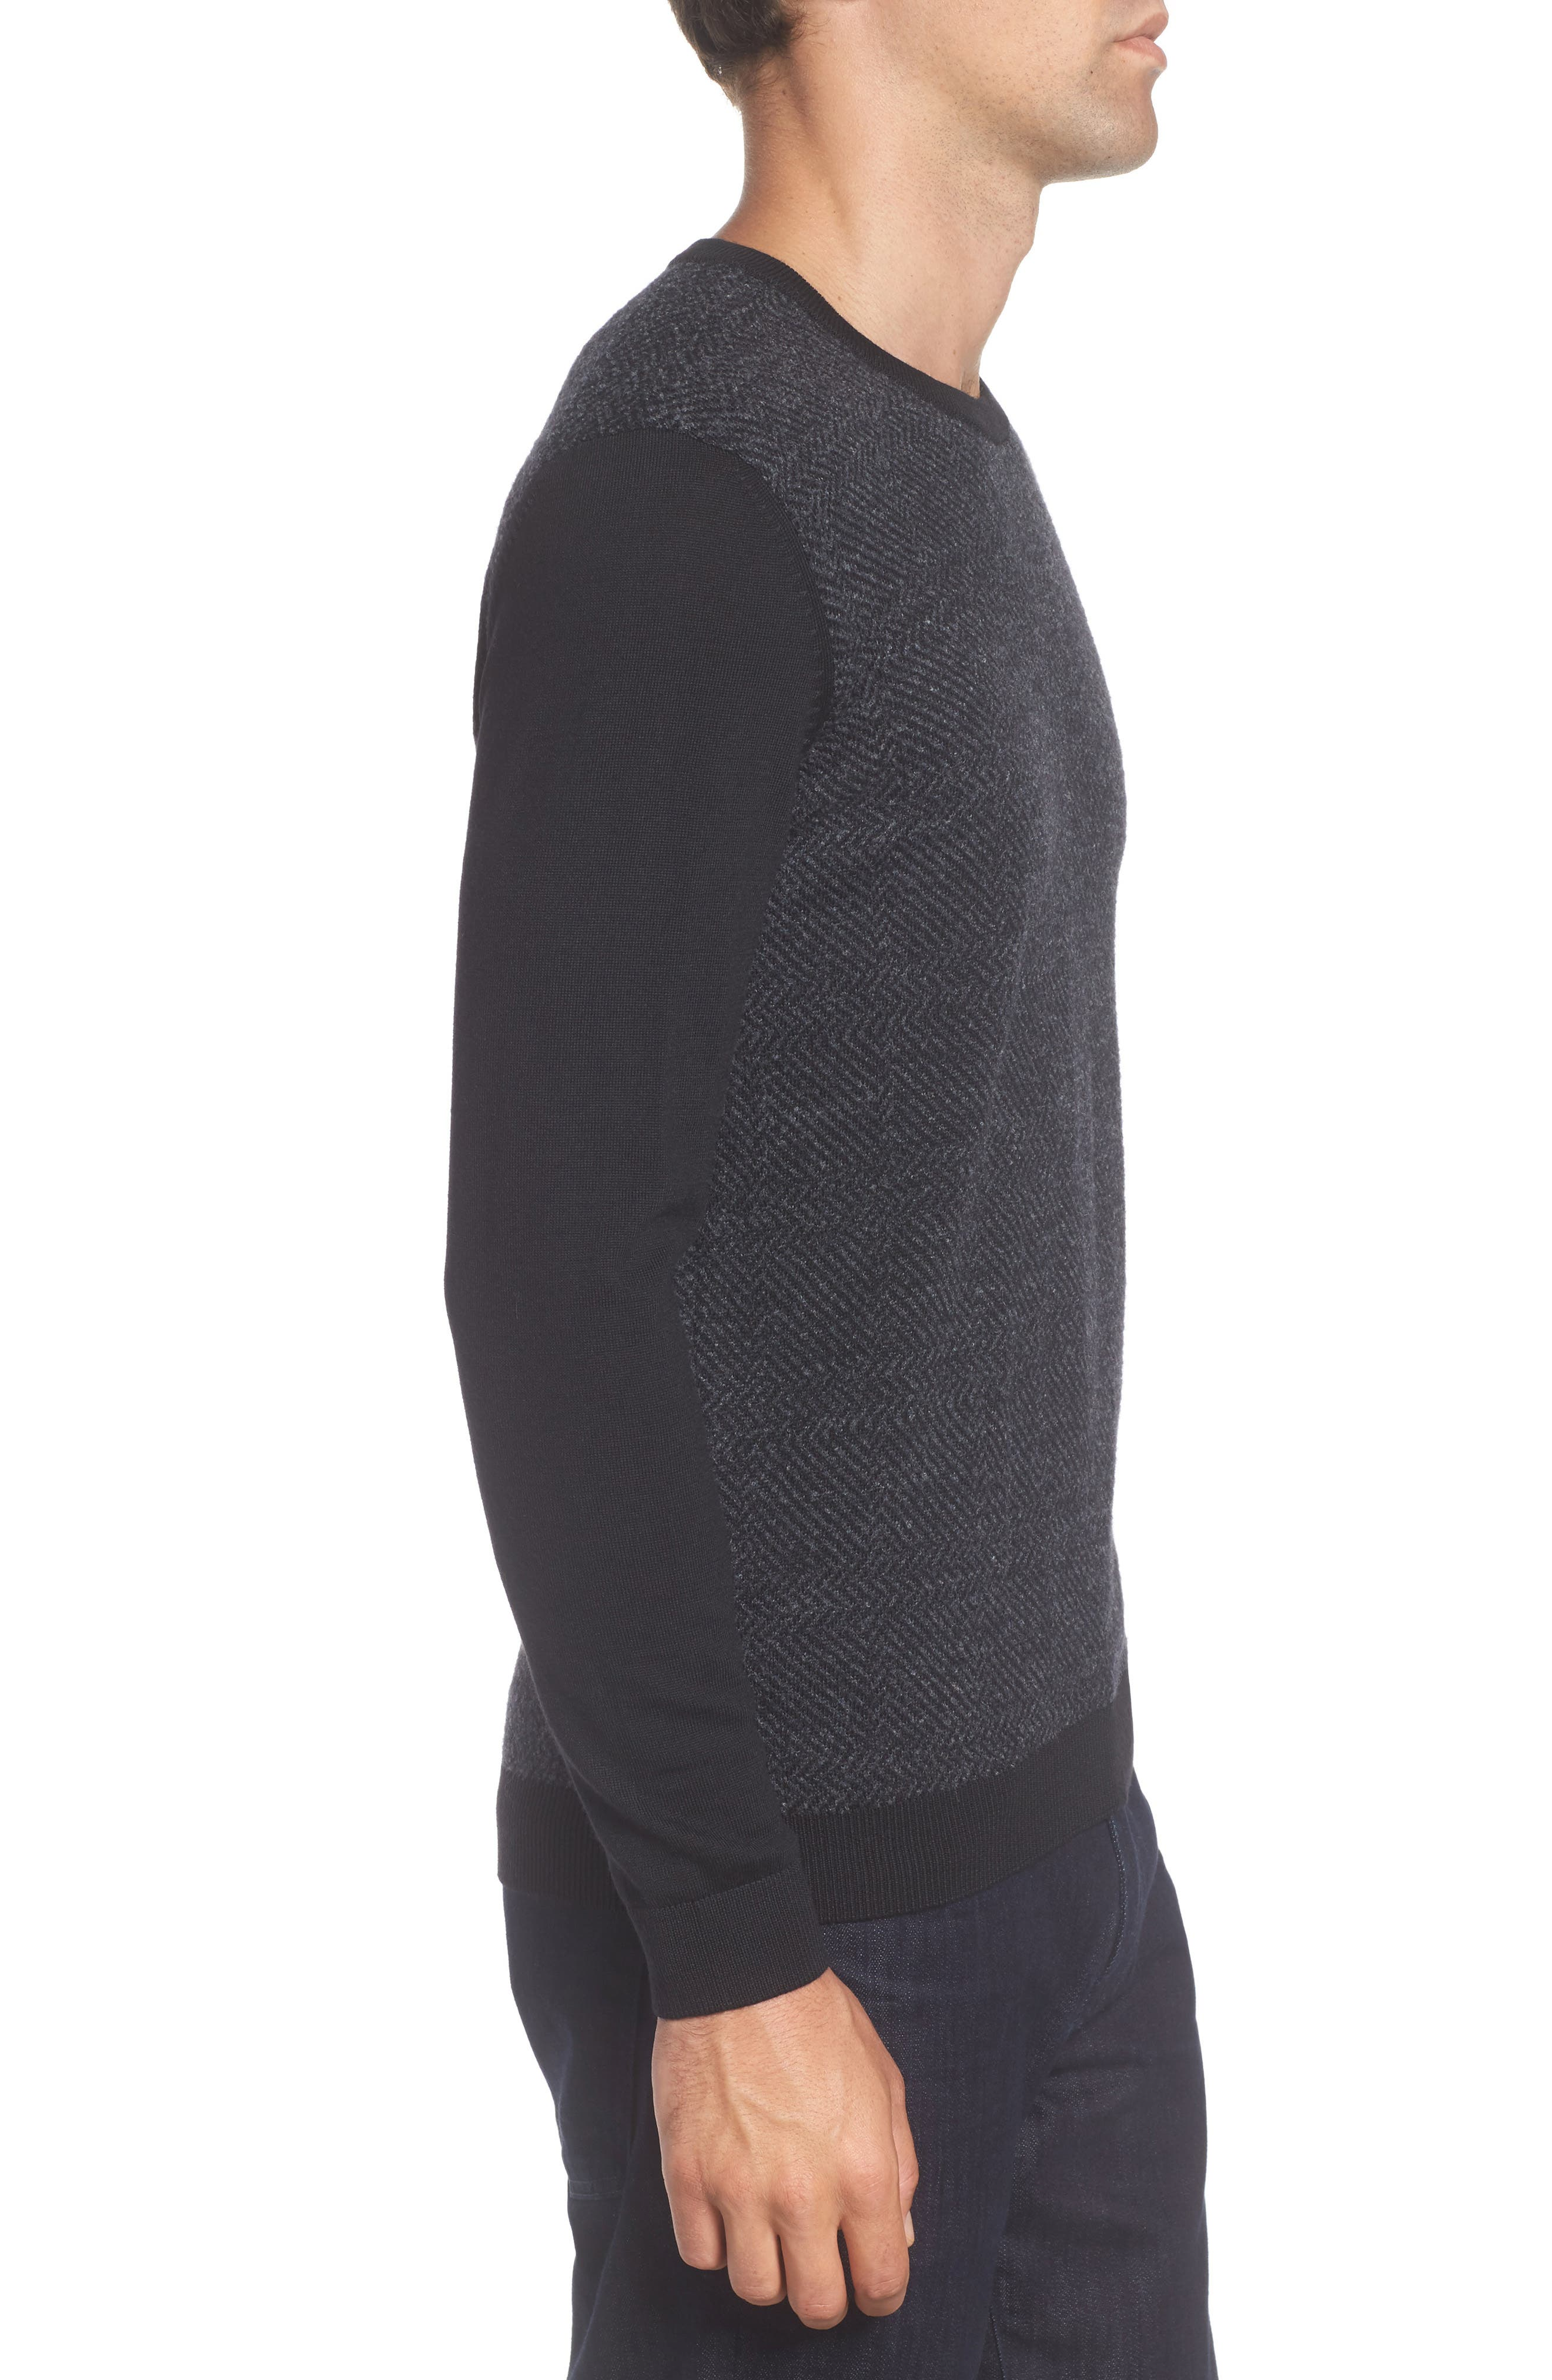 Notto Wool Blend Sweater,                             Alternate thumbnail 3, color,                             Black